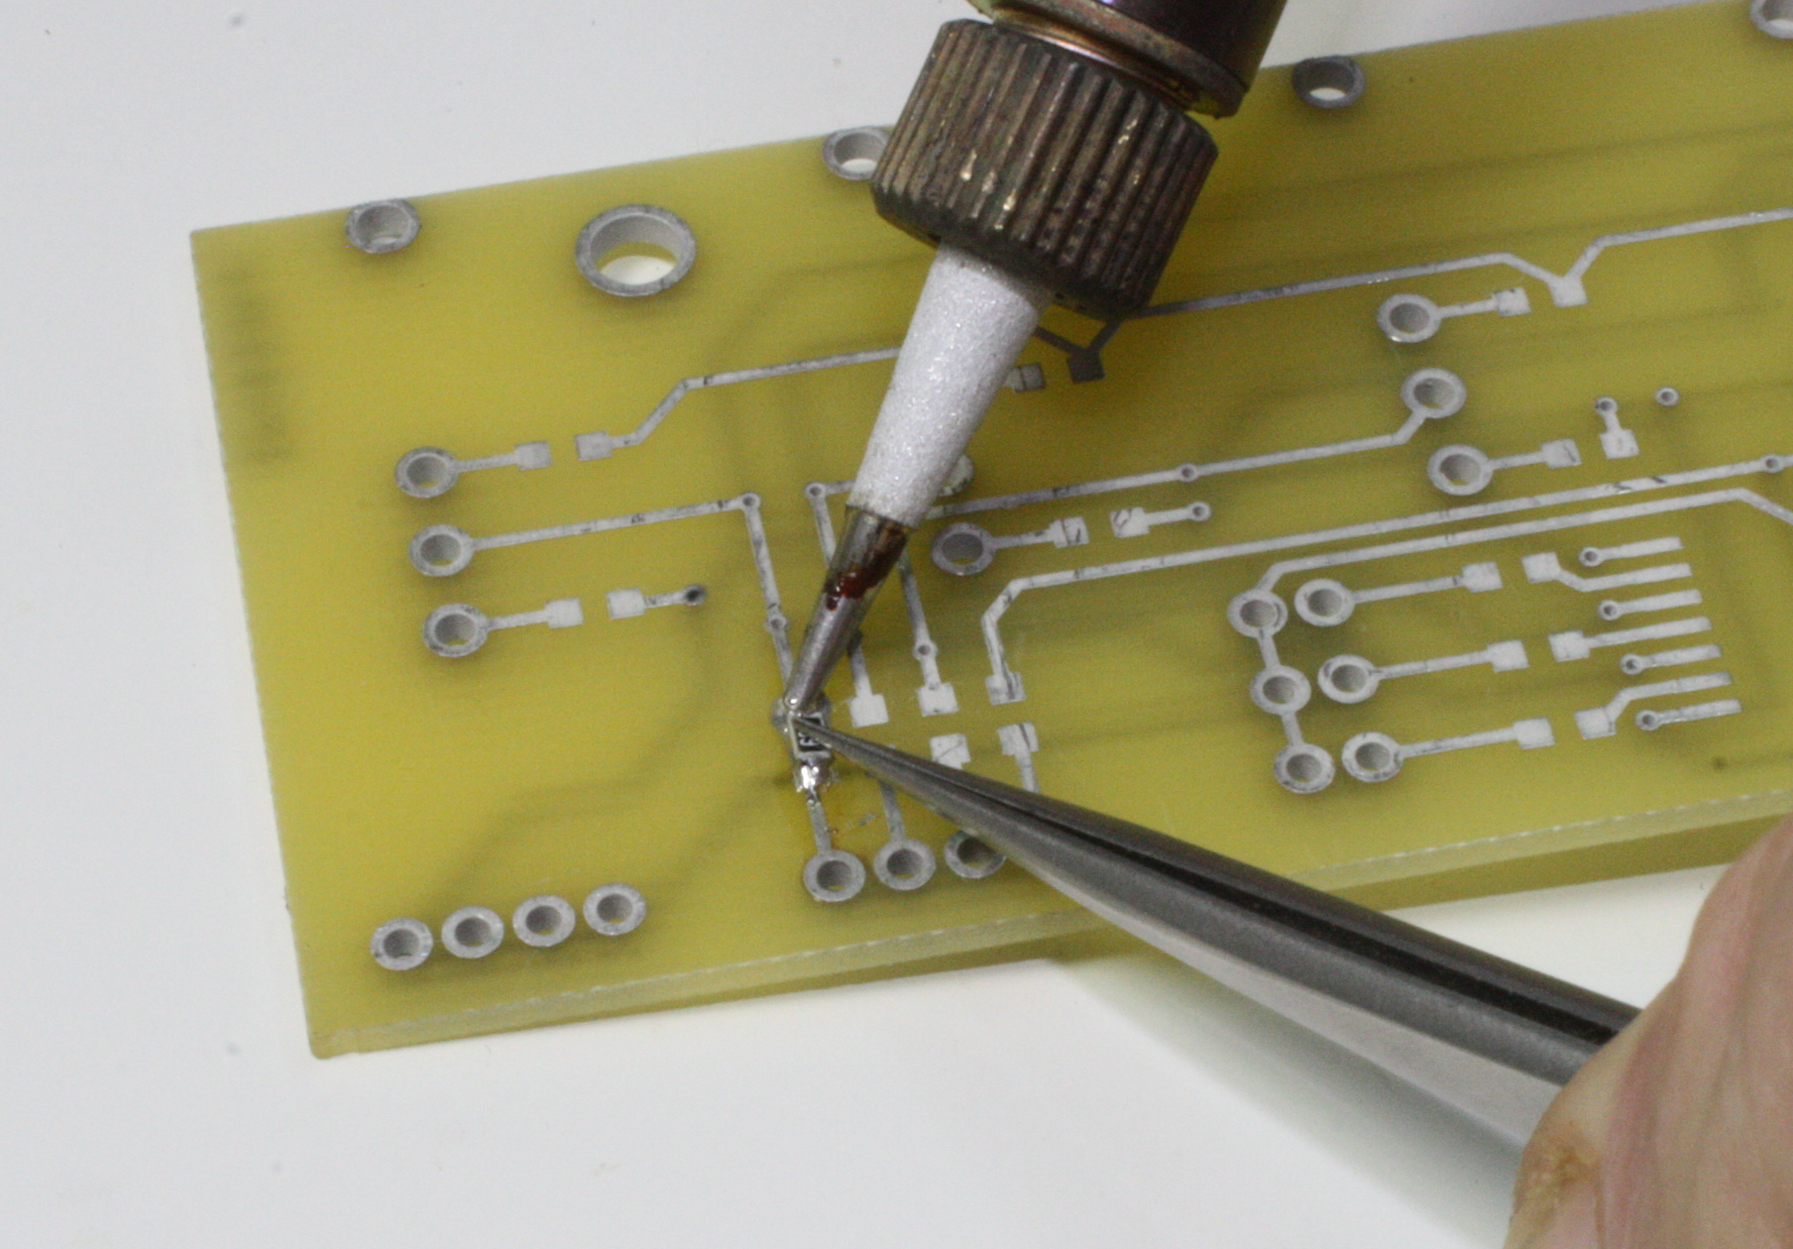 4 Tool Techniques Practical Electronics Components And Circuit Board Clamp Science Kit Printed Boards Figure 41 Soldering One End Of An Smt Resistor